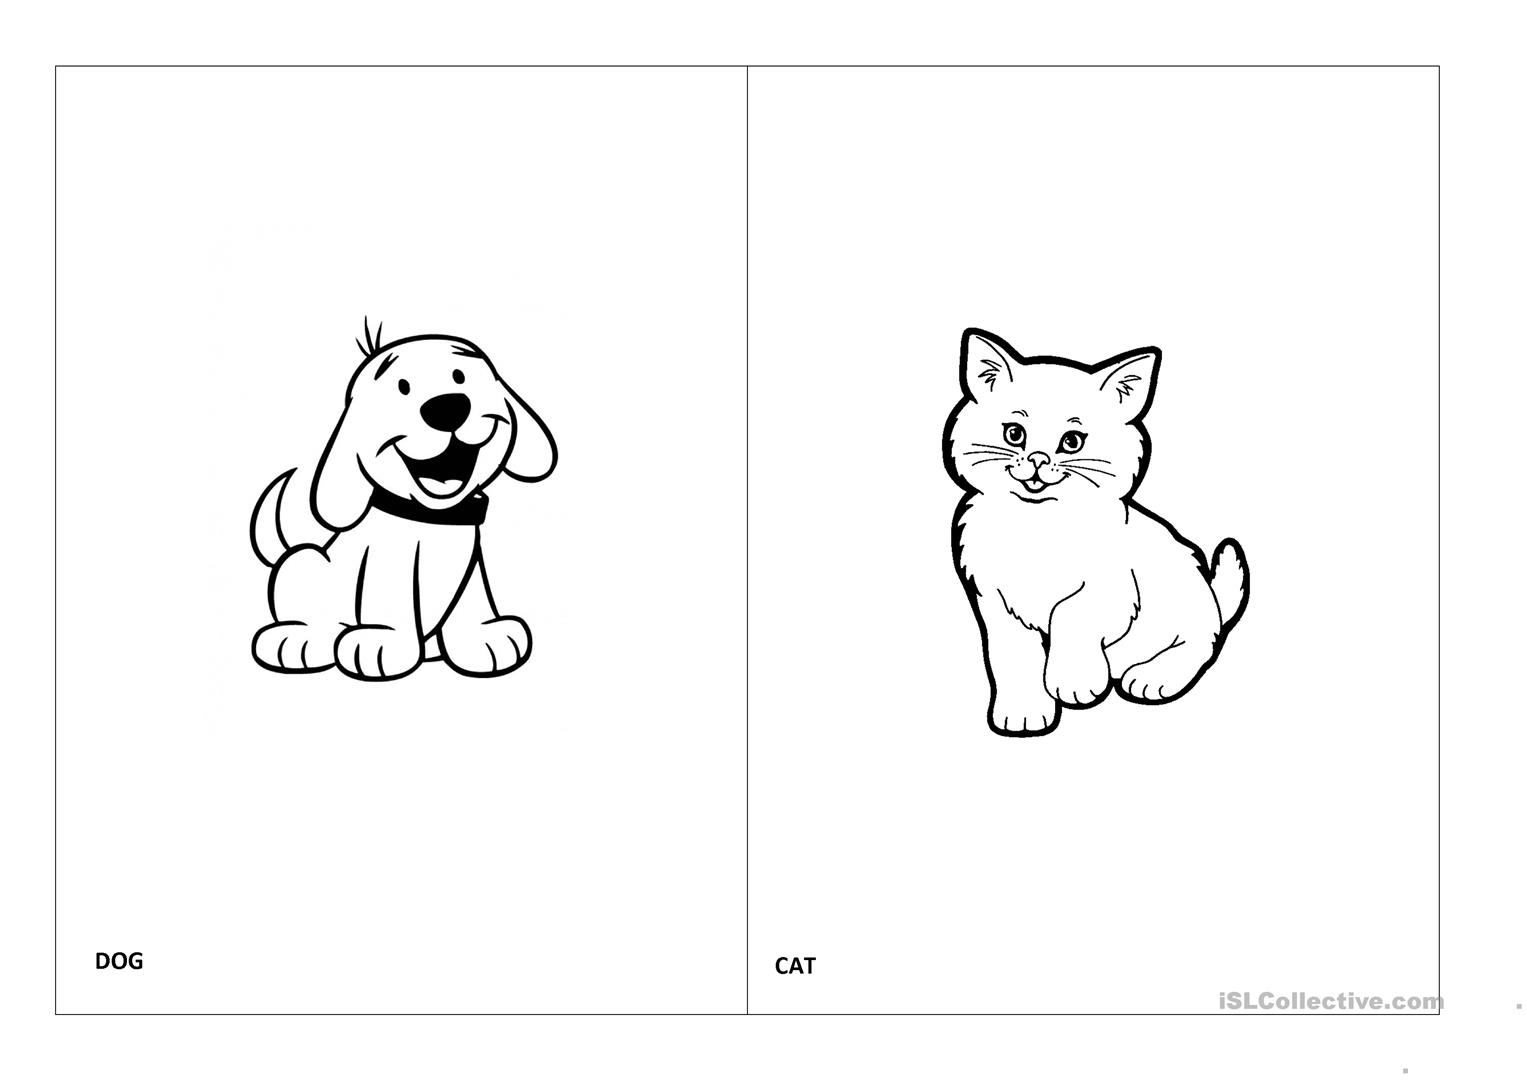 Animals - Pets Worksheet - Free Esl Printable Worksheets Made | Pets Worksheets Printables